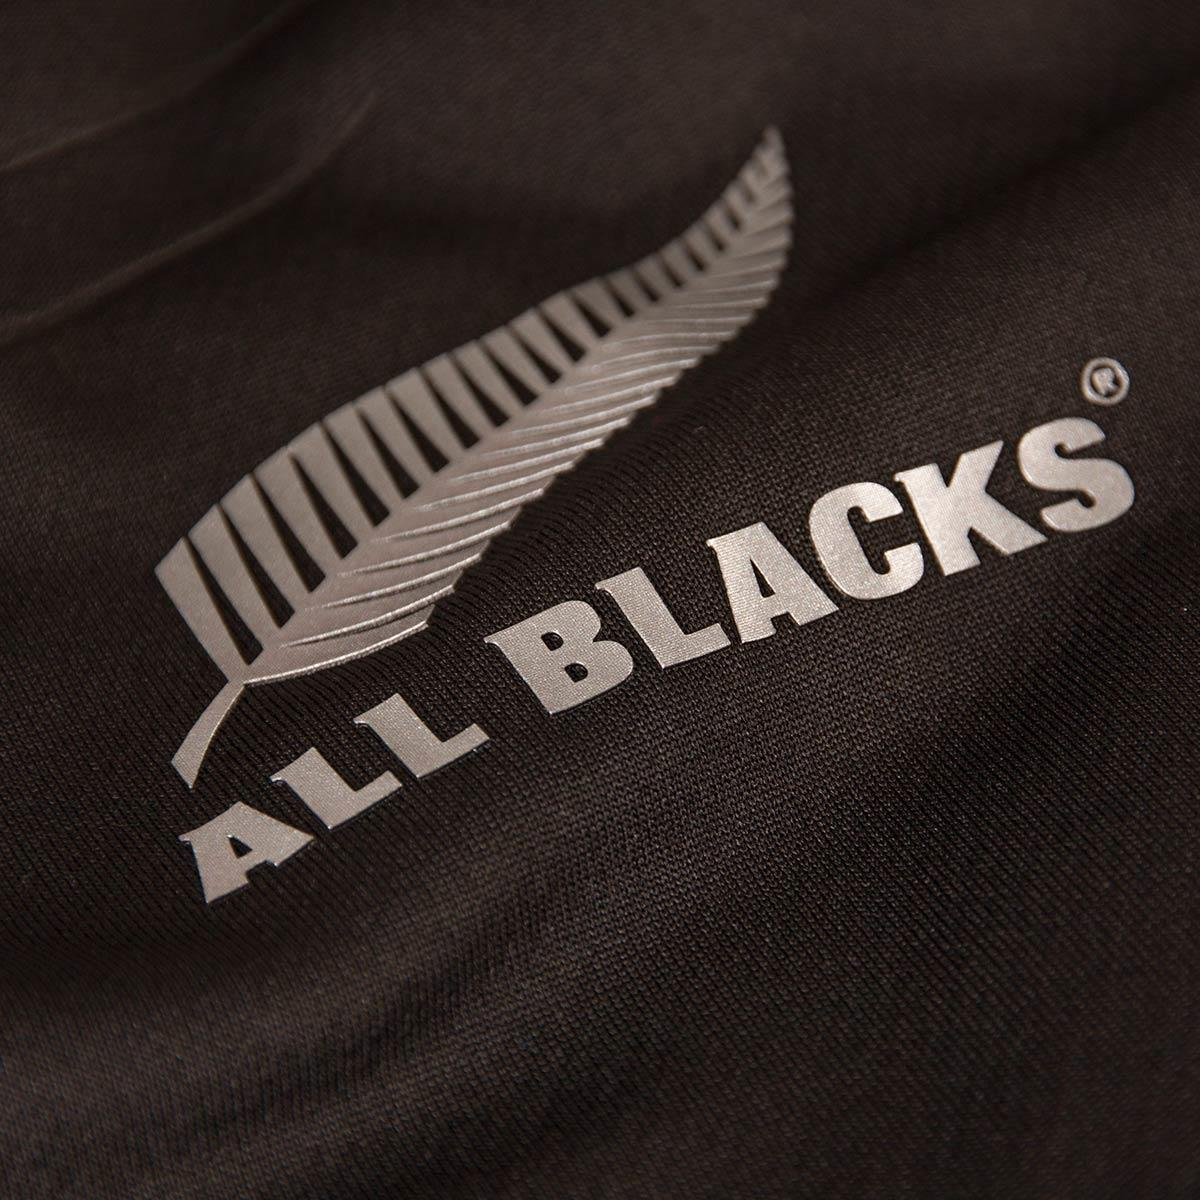 All black t shirt new zealand - That S Not The Only Aspect Of The None More All Blacks Shirt To Have Been Retained Either Namely The Gunmetal Silver Fern And Adidas Logo